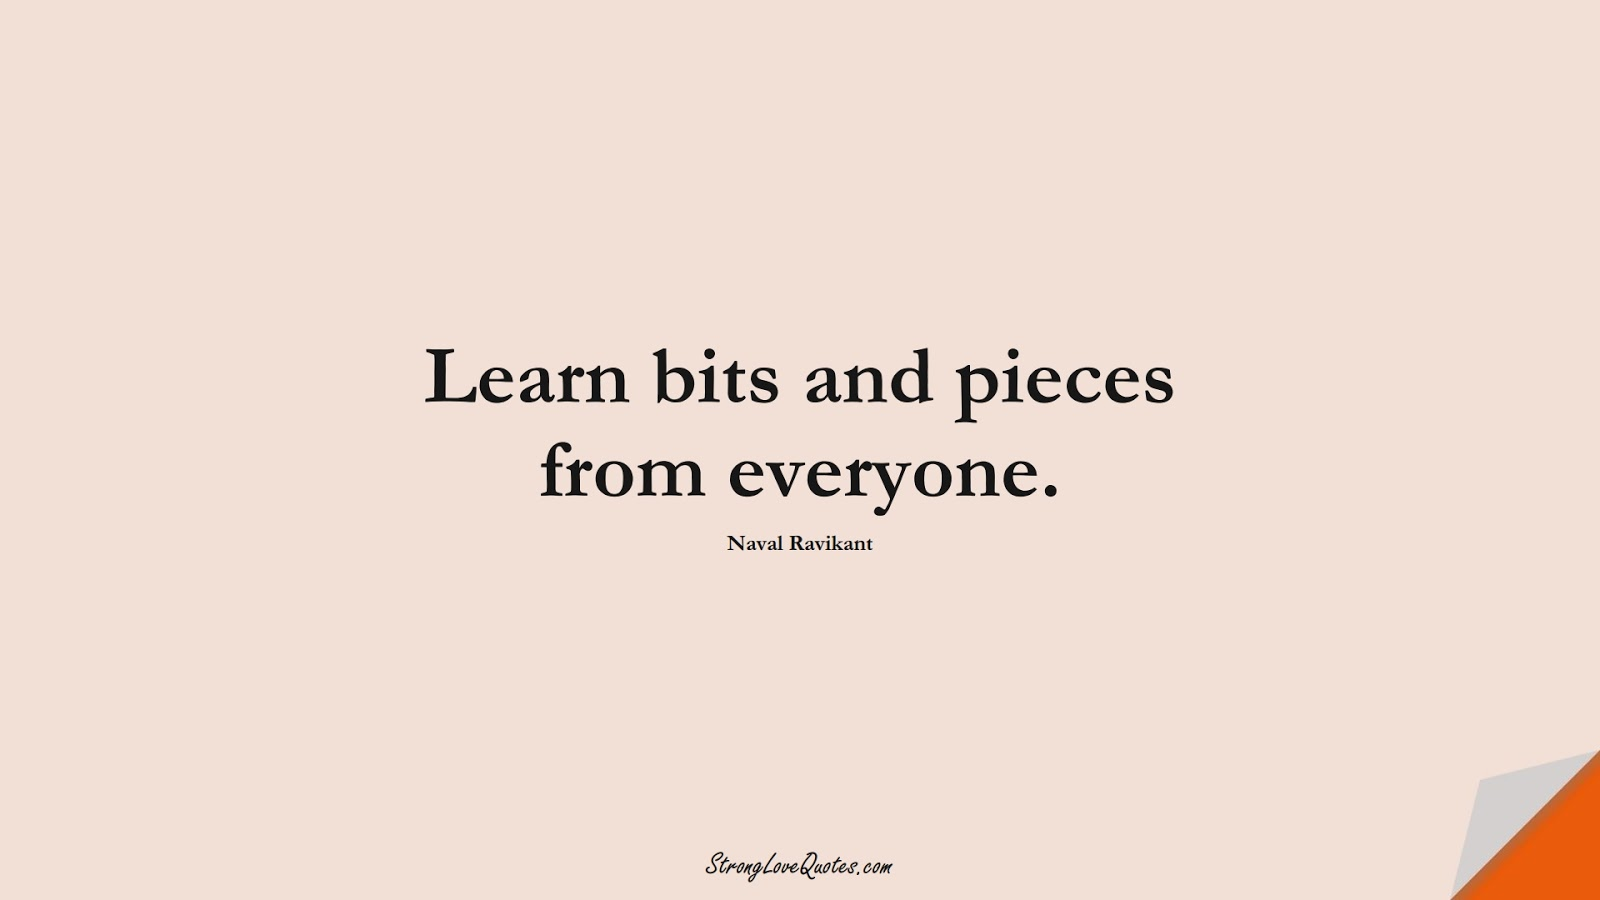 Learn bits and pieces from everyone. (Naval Ravikant);  #LearningQuotes